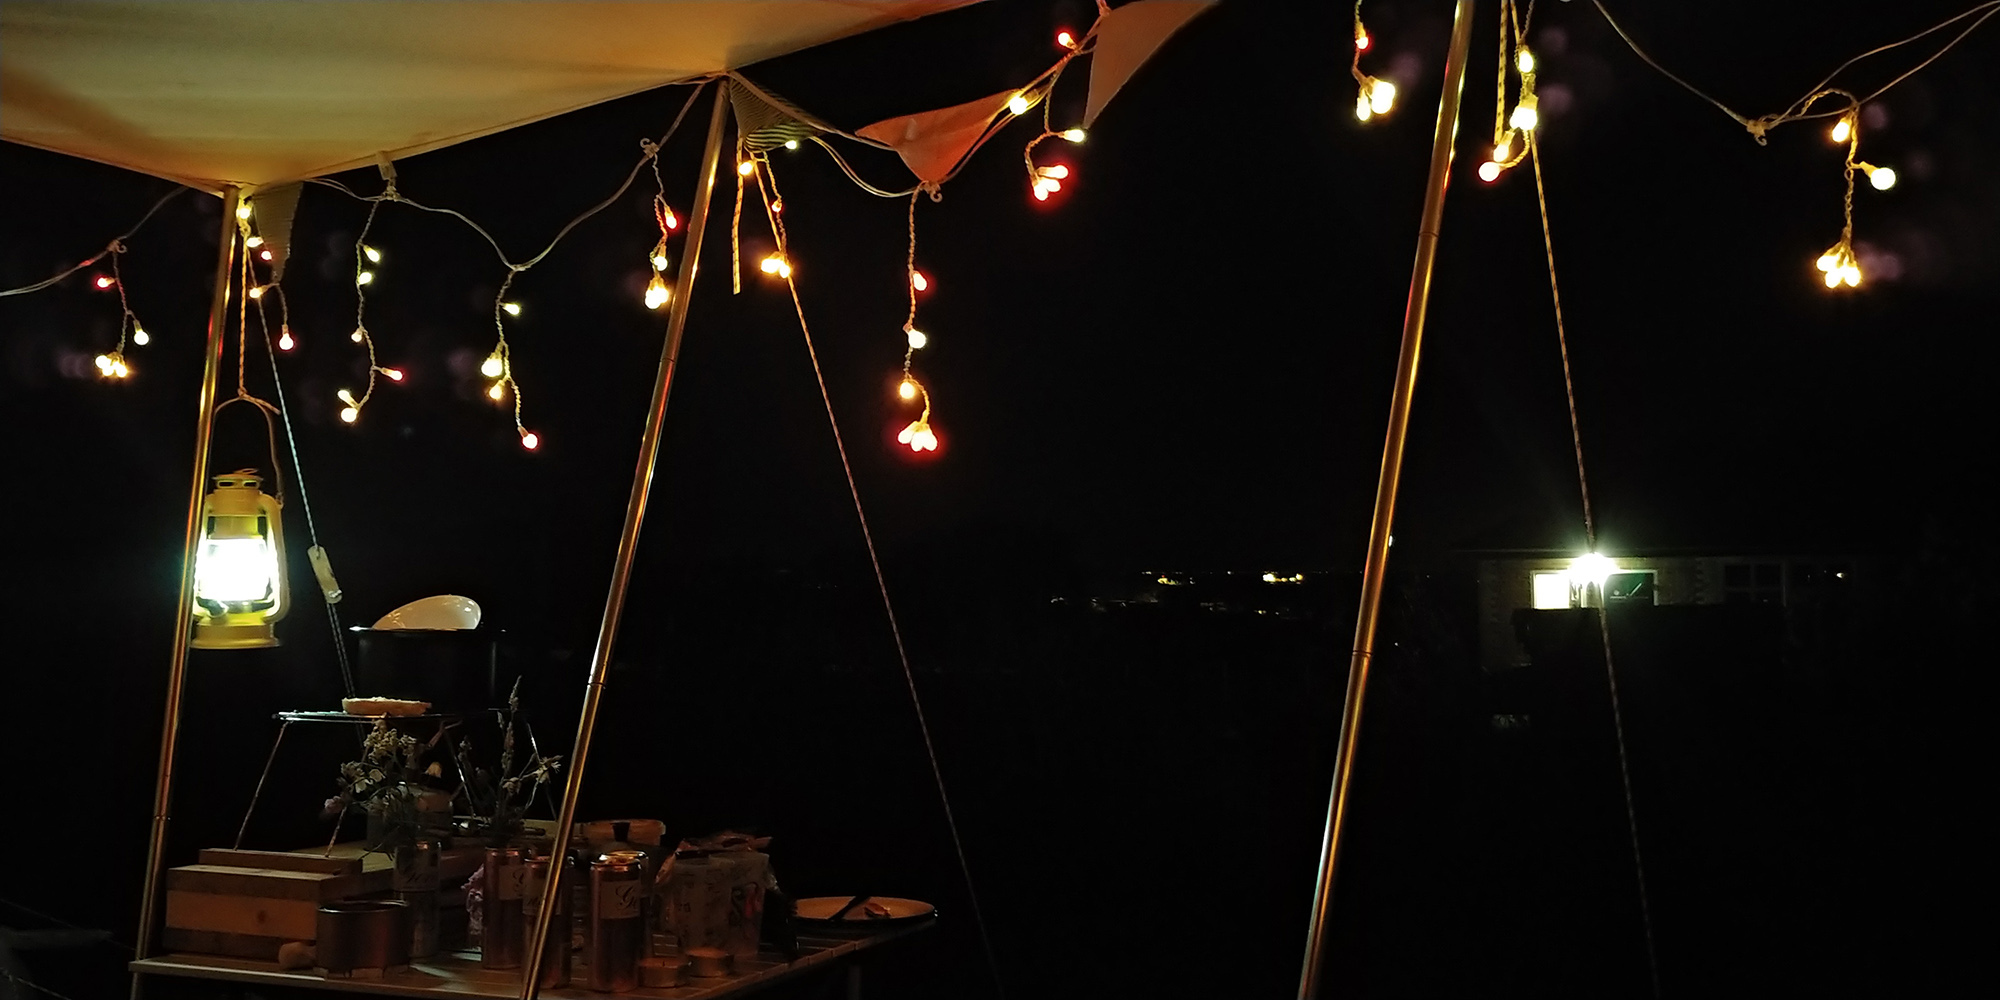 I bought these outdoor fairy lights years ago in a Habitat sale, and they're still going strong.